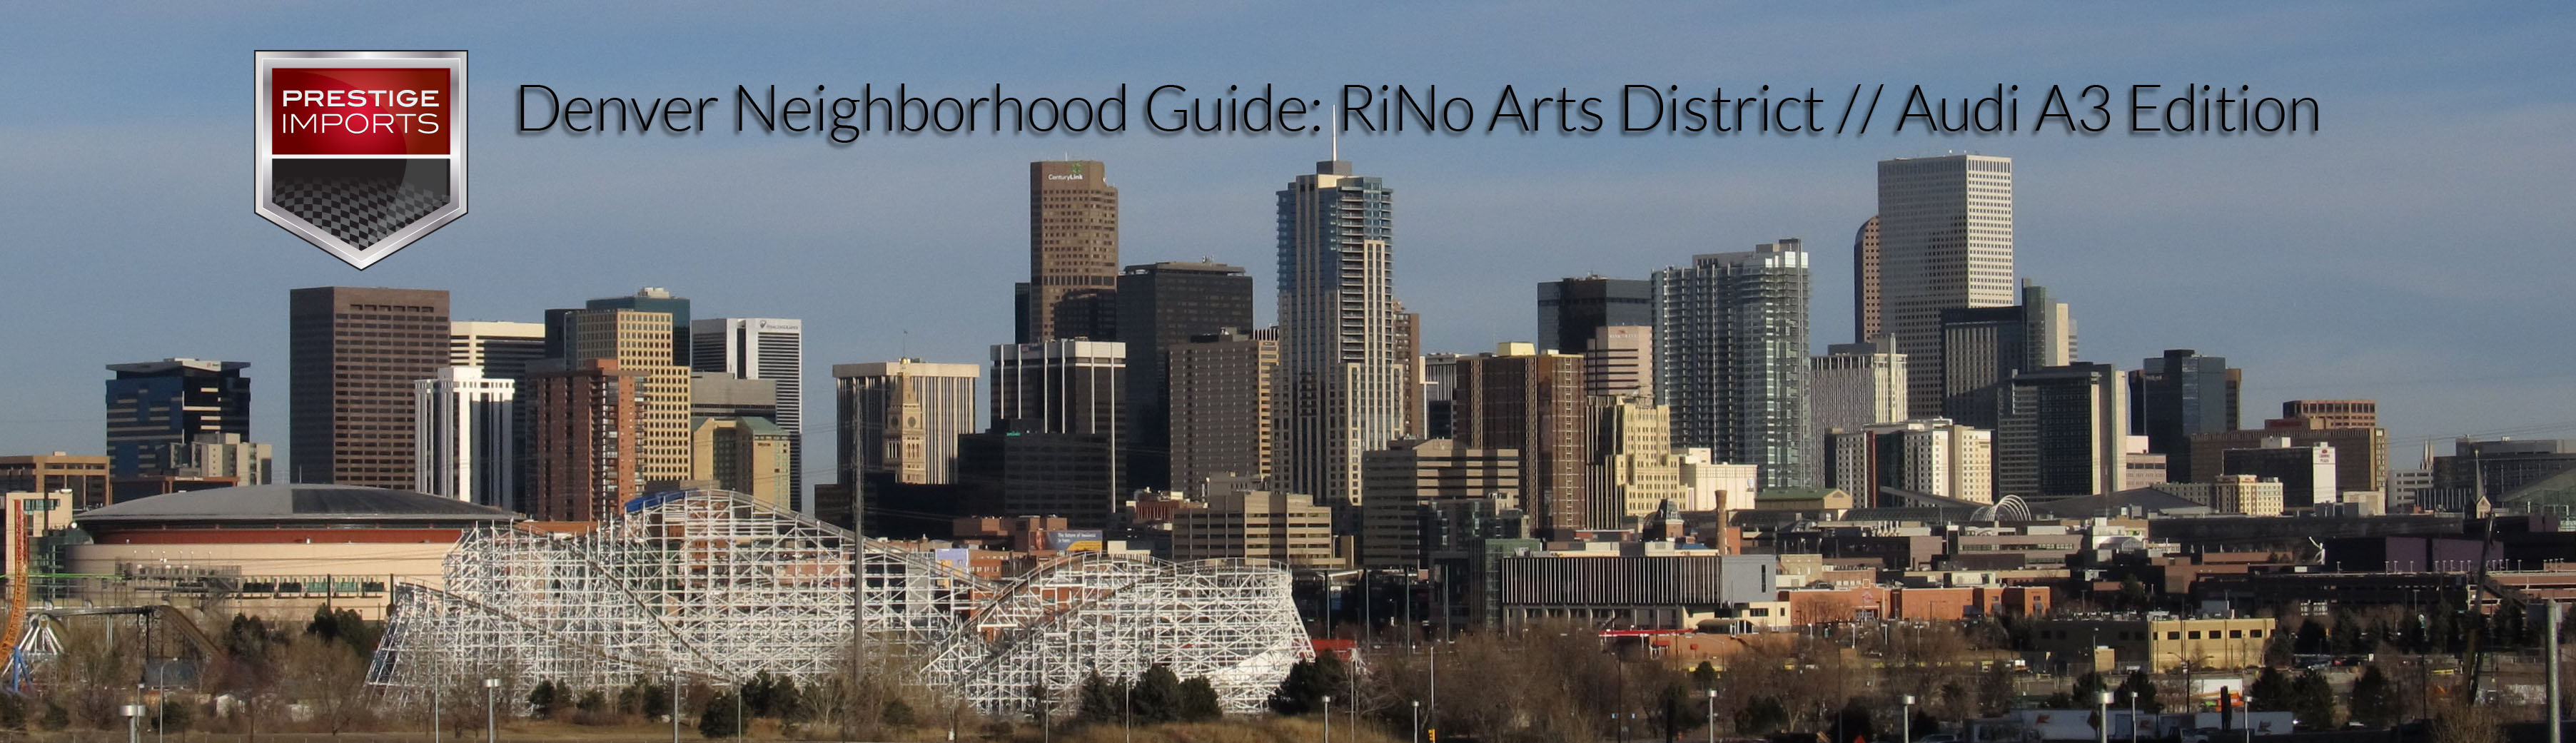 Prestige Imports' Denver Neighborhood Guide - The RiNo Art District meets the Audi A3